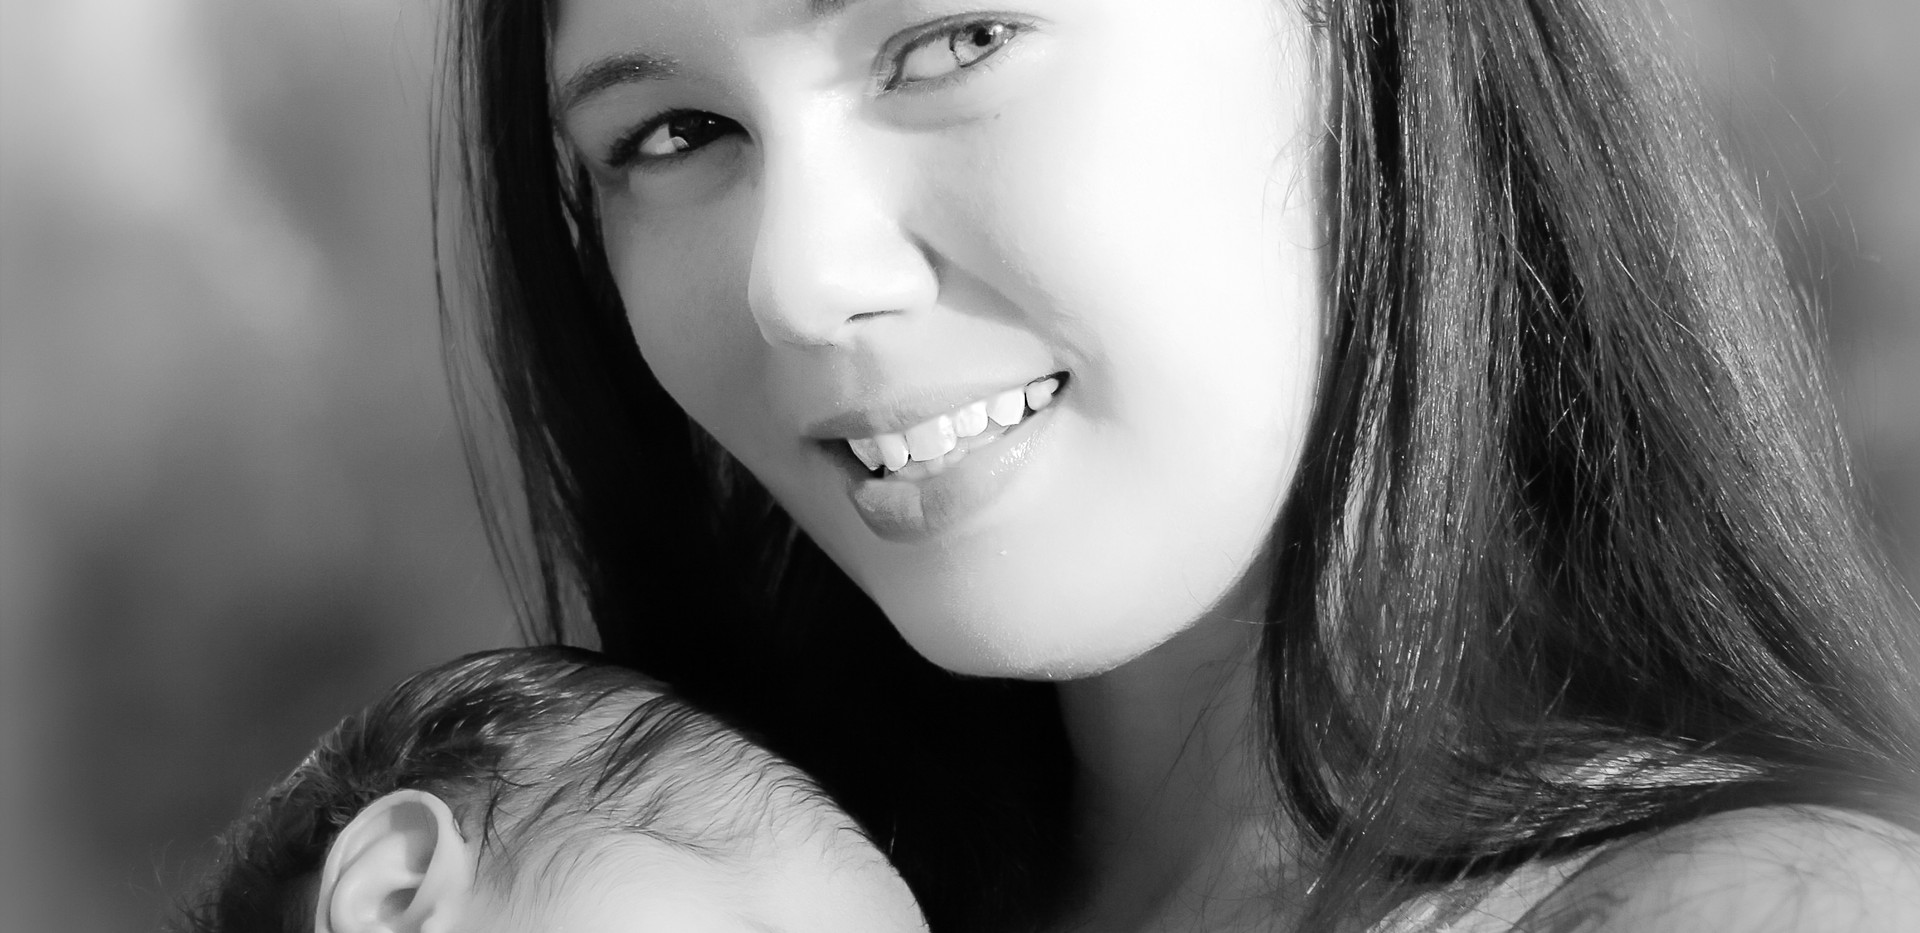 Mother and Baby Portrait in Black and White